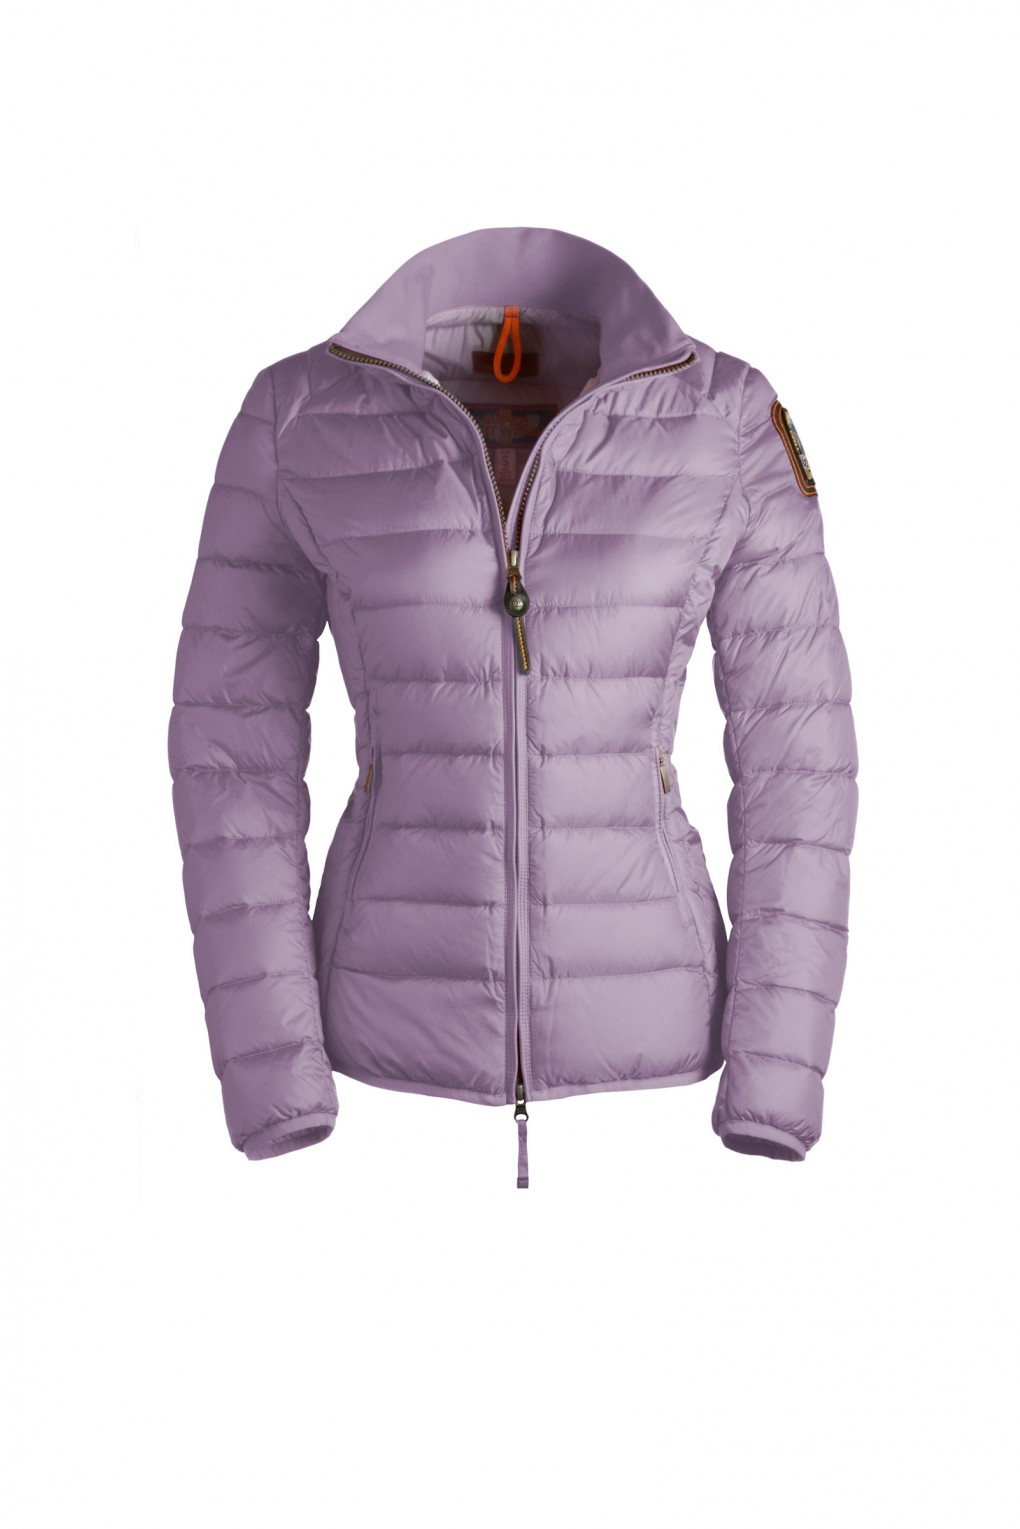 parajumpers GEENA 6 woman outerwear Mauve